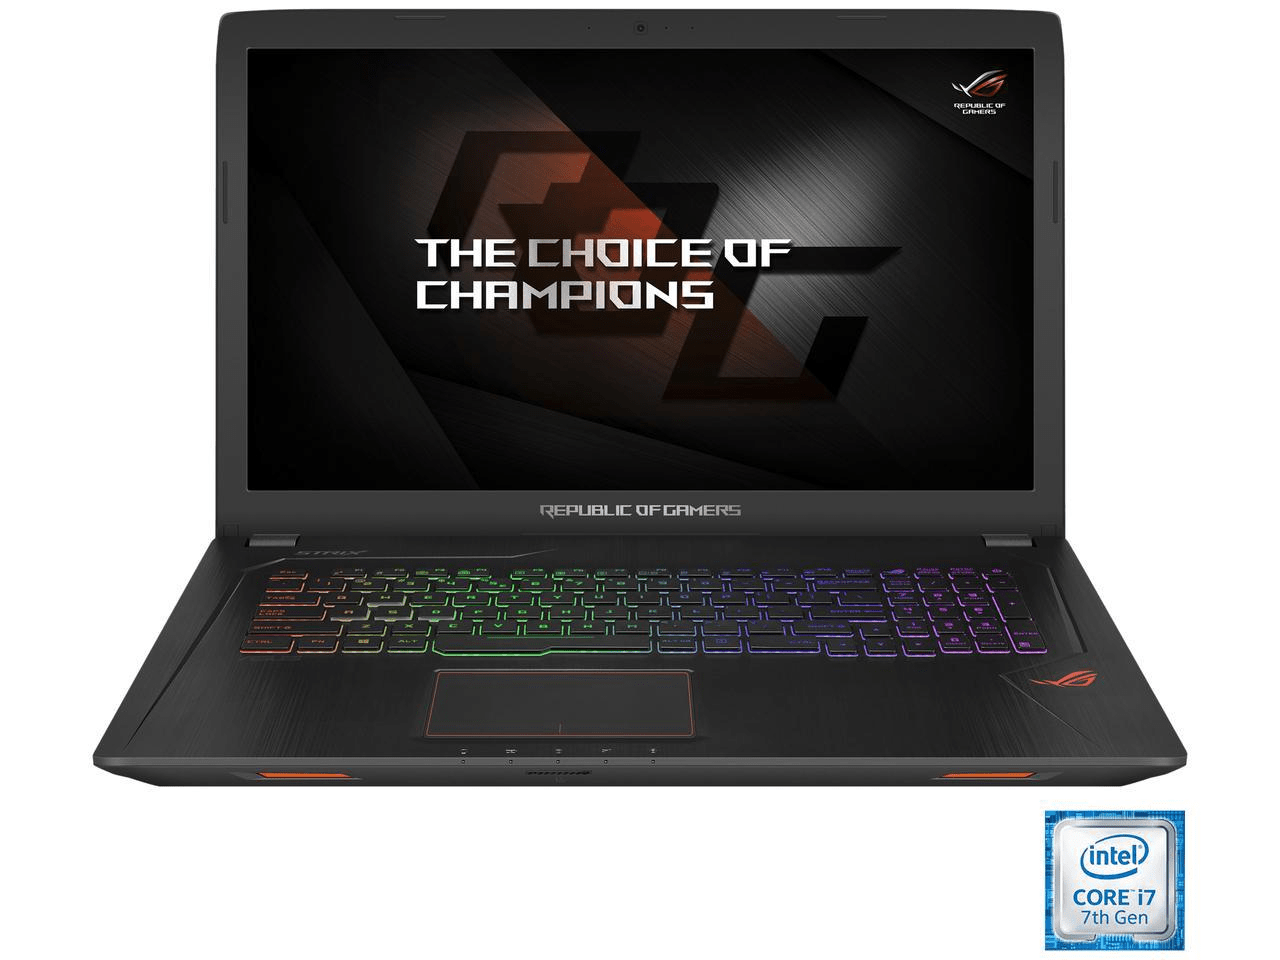 cymatics-asus rog-best laptop for music production